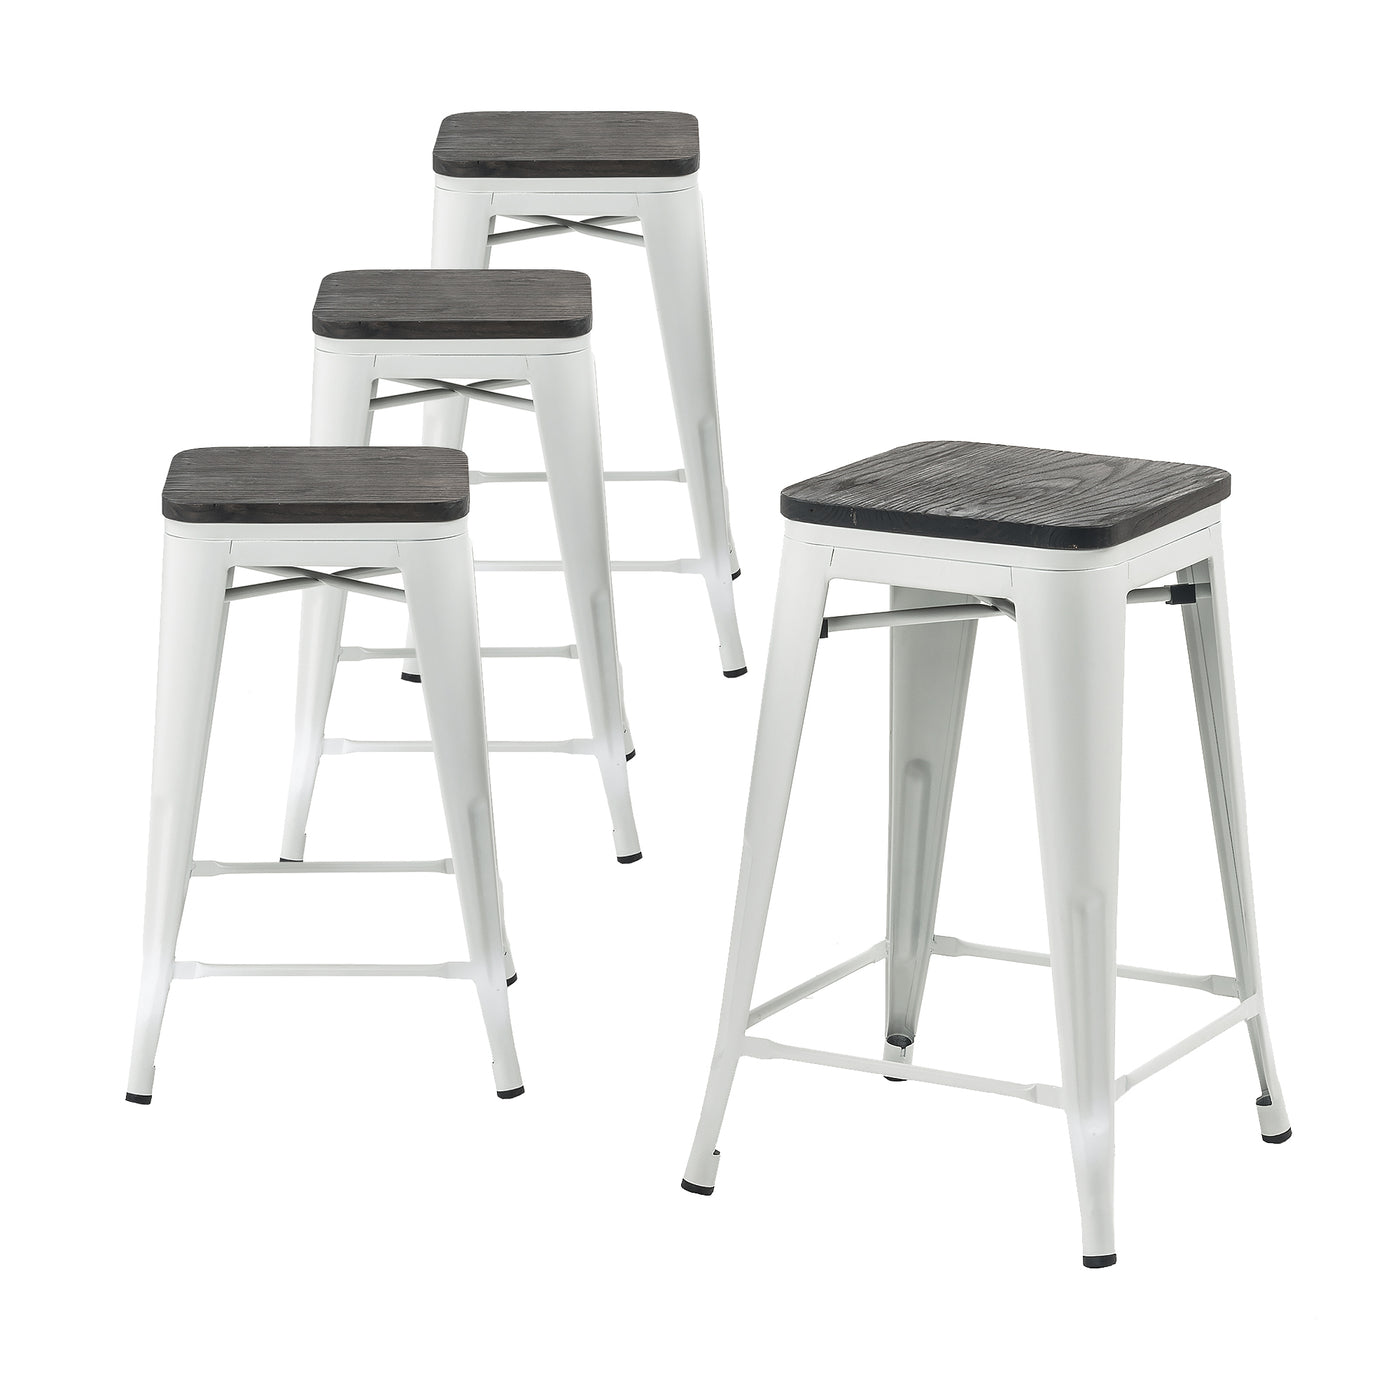 Remarkable Buschman Store Metal Bar Stools 24 Counter Height Indoor Squirreltailoven Fun Painted Chair Ideas Images Squirreltailovenorg